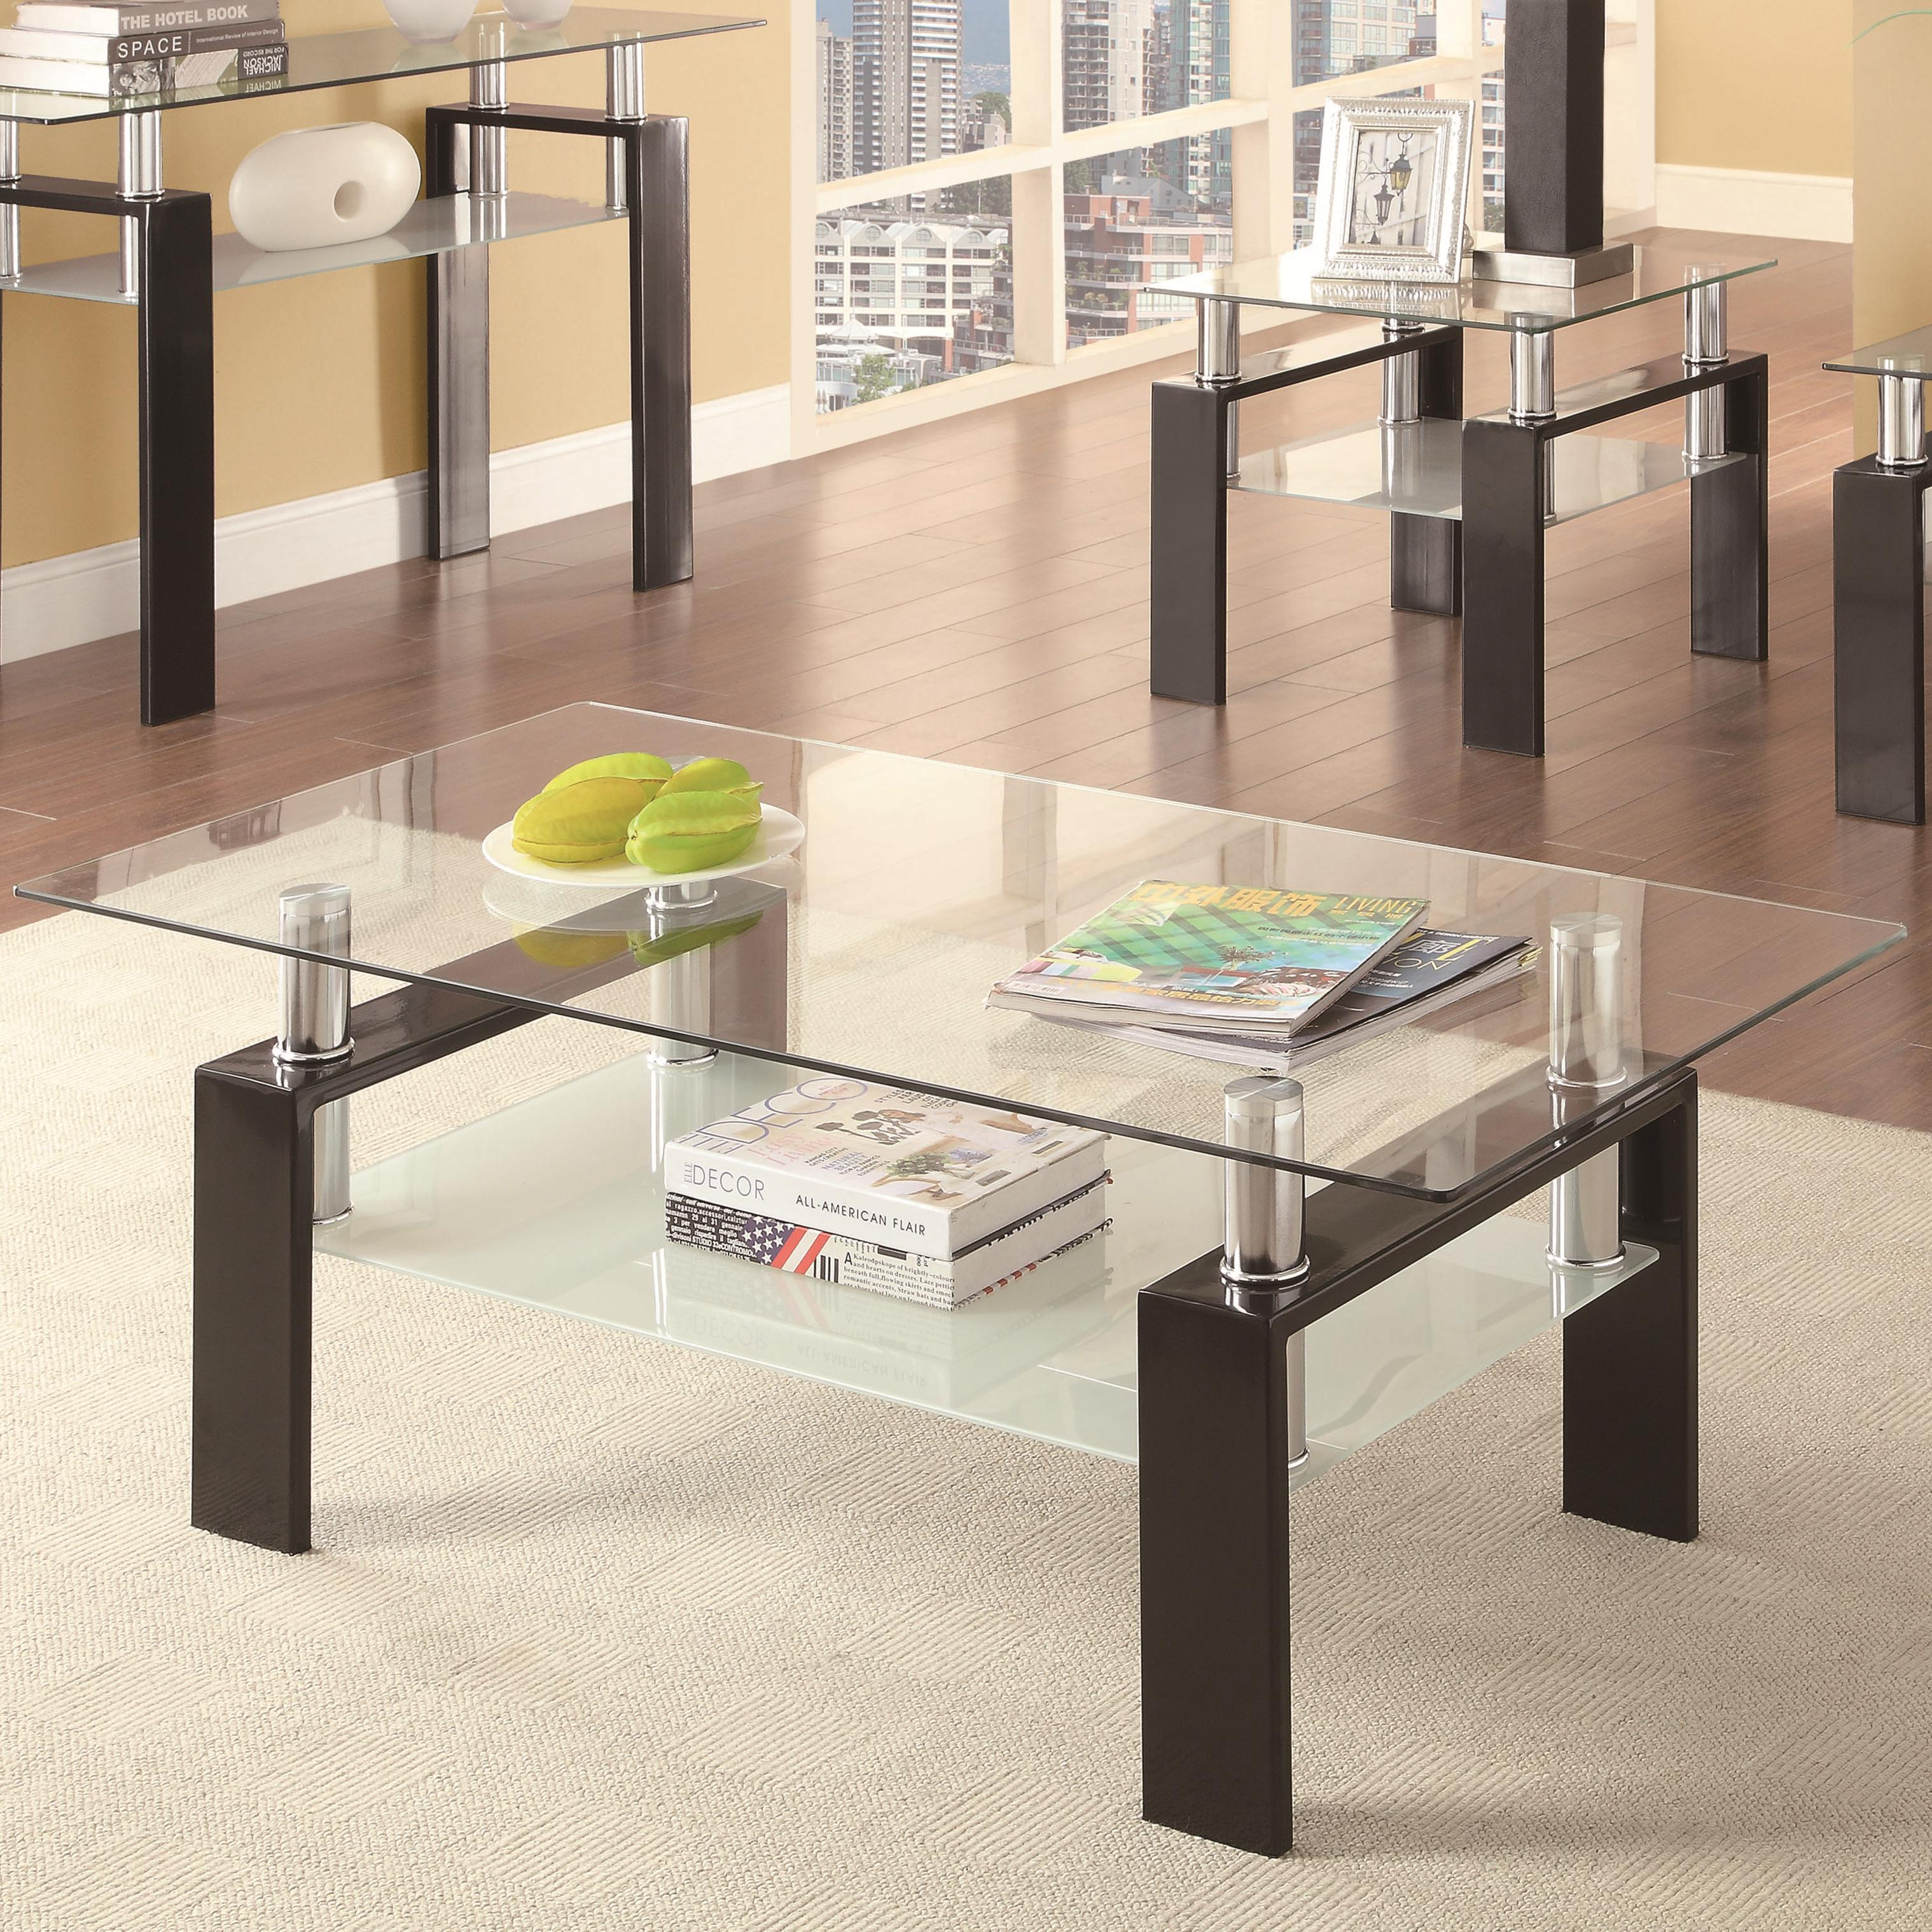 Occasional Group 702280 Coffee Table by Coaster at Suburban Furniture